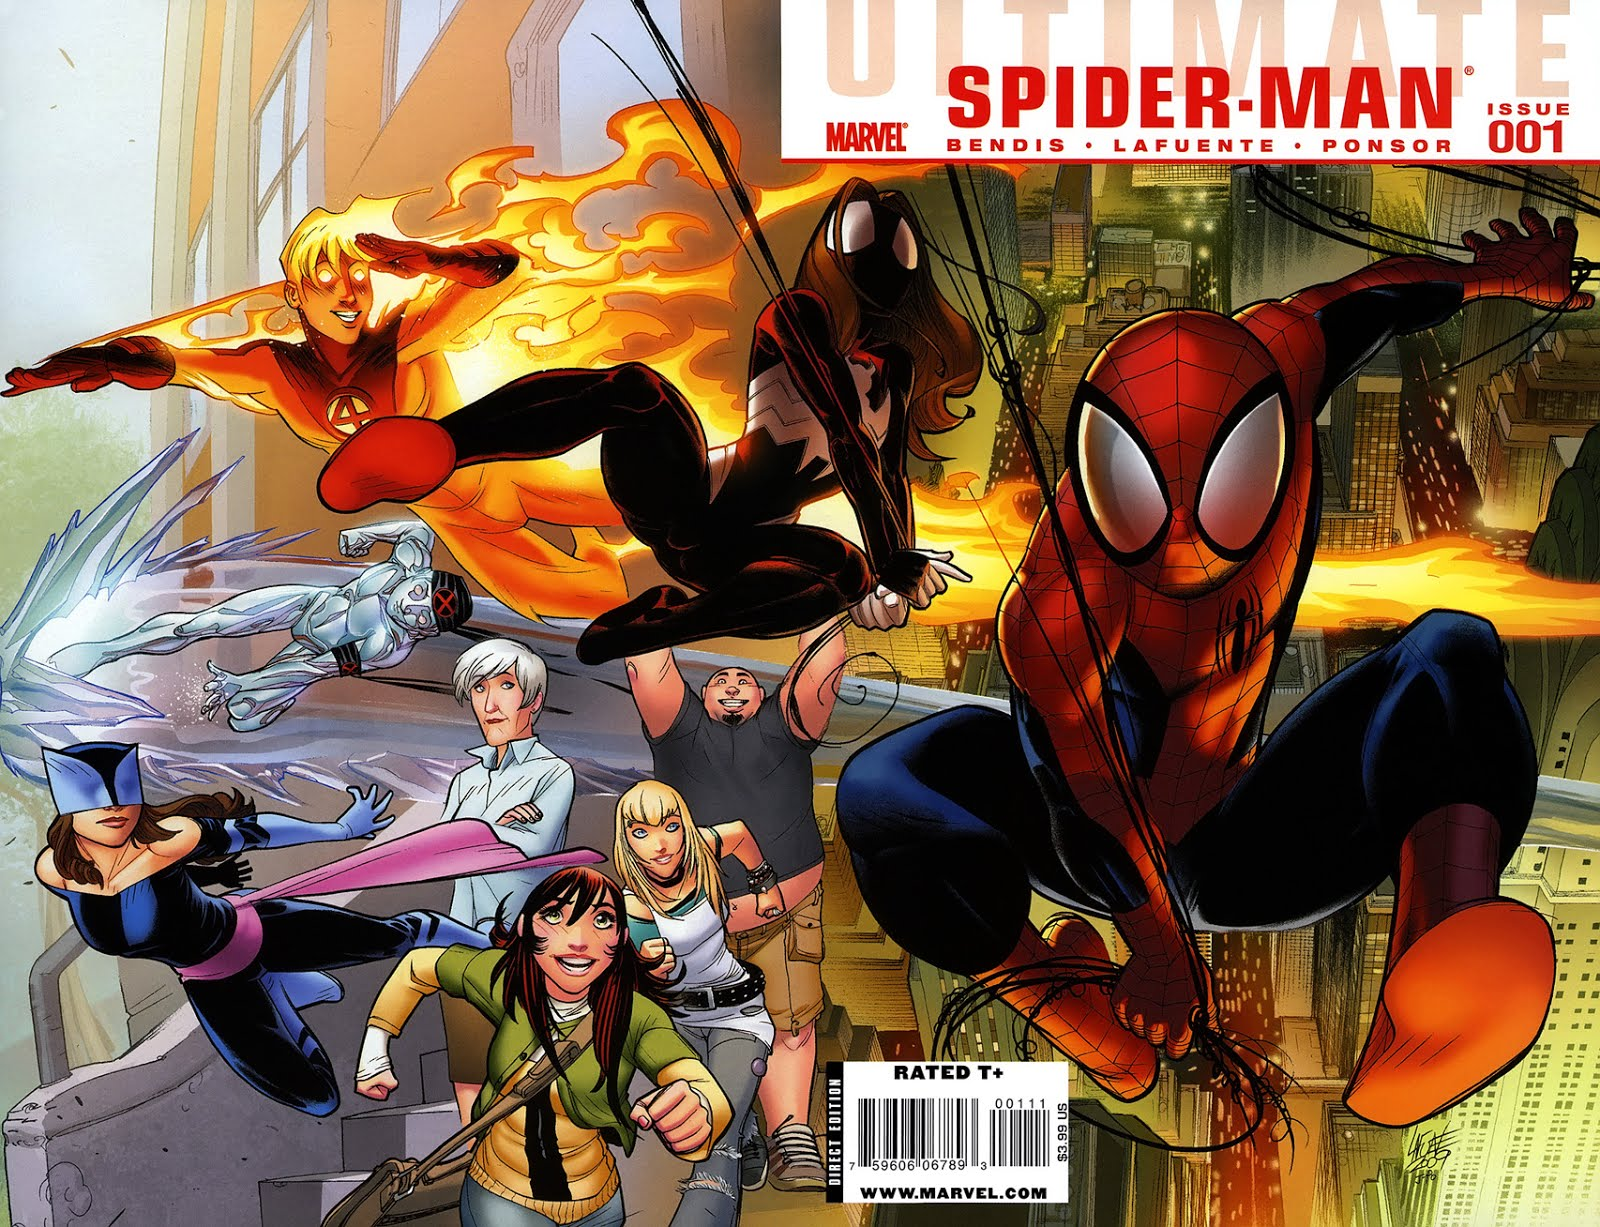 ULTIMATE COMICS SPIDER-MAN #001